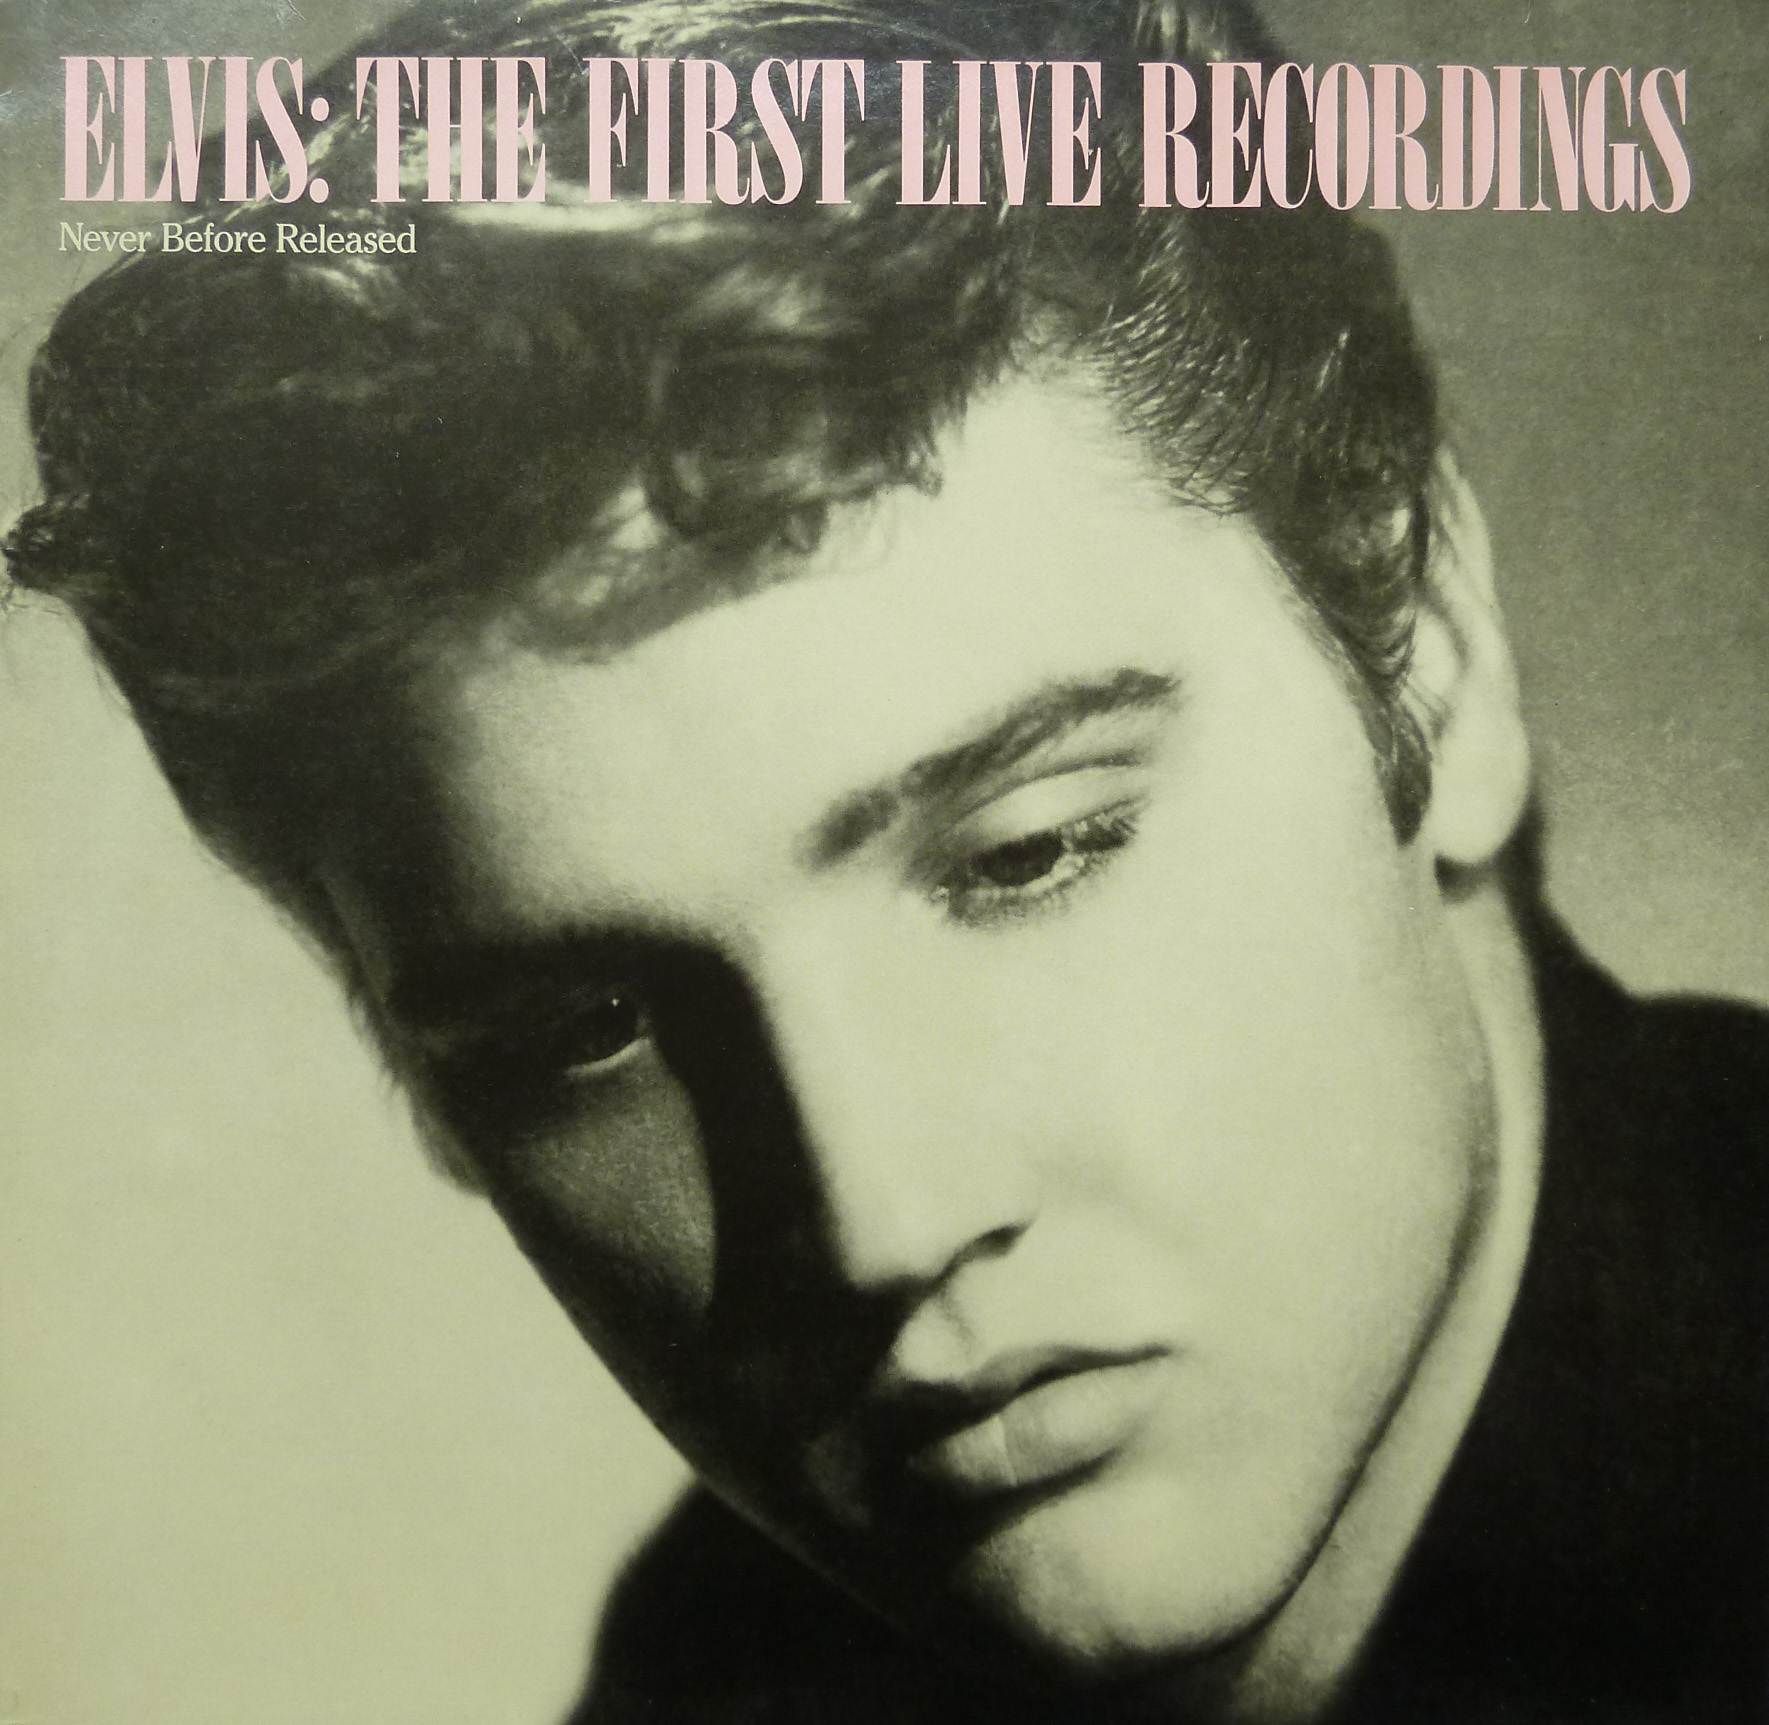 ELVIS: THE FIRST LIVE RECORDINGS Firstliverec05_84fronn8rul